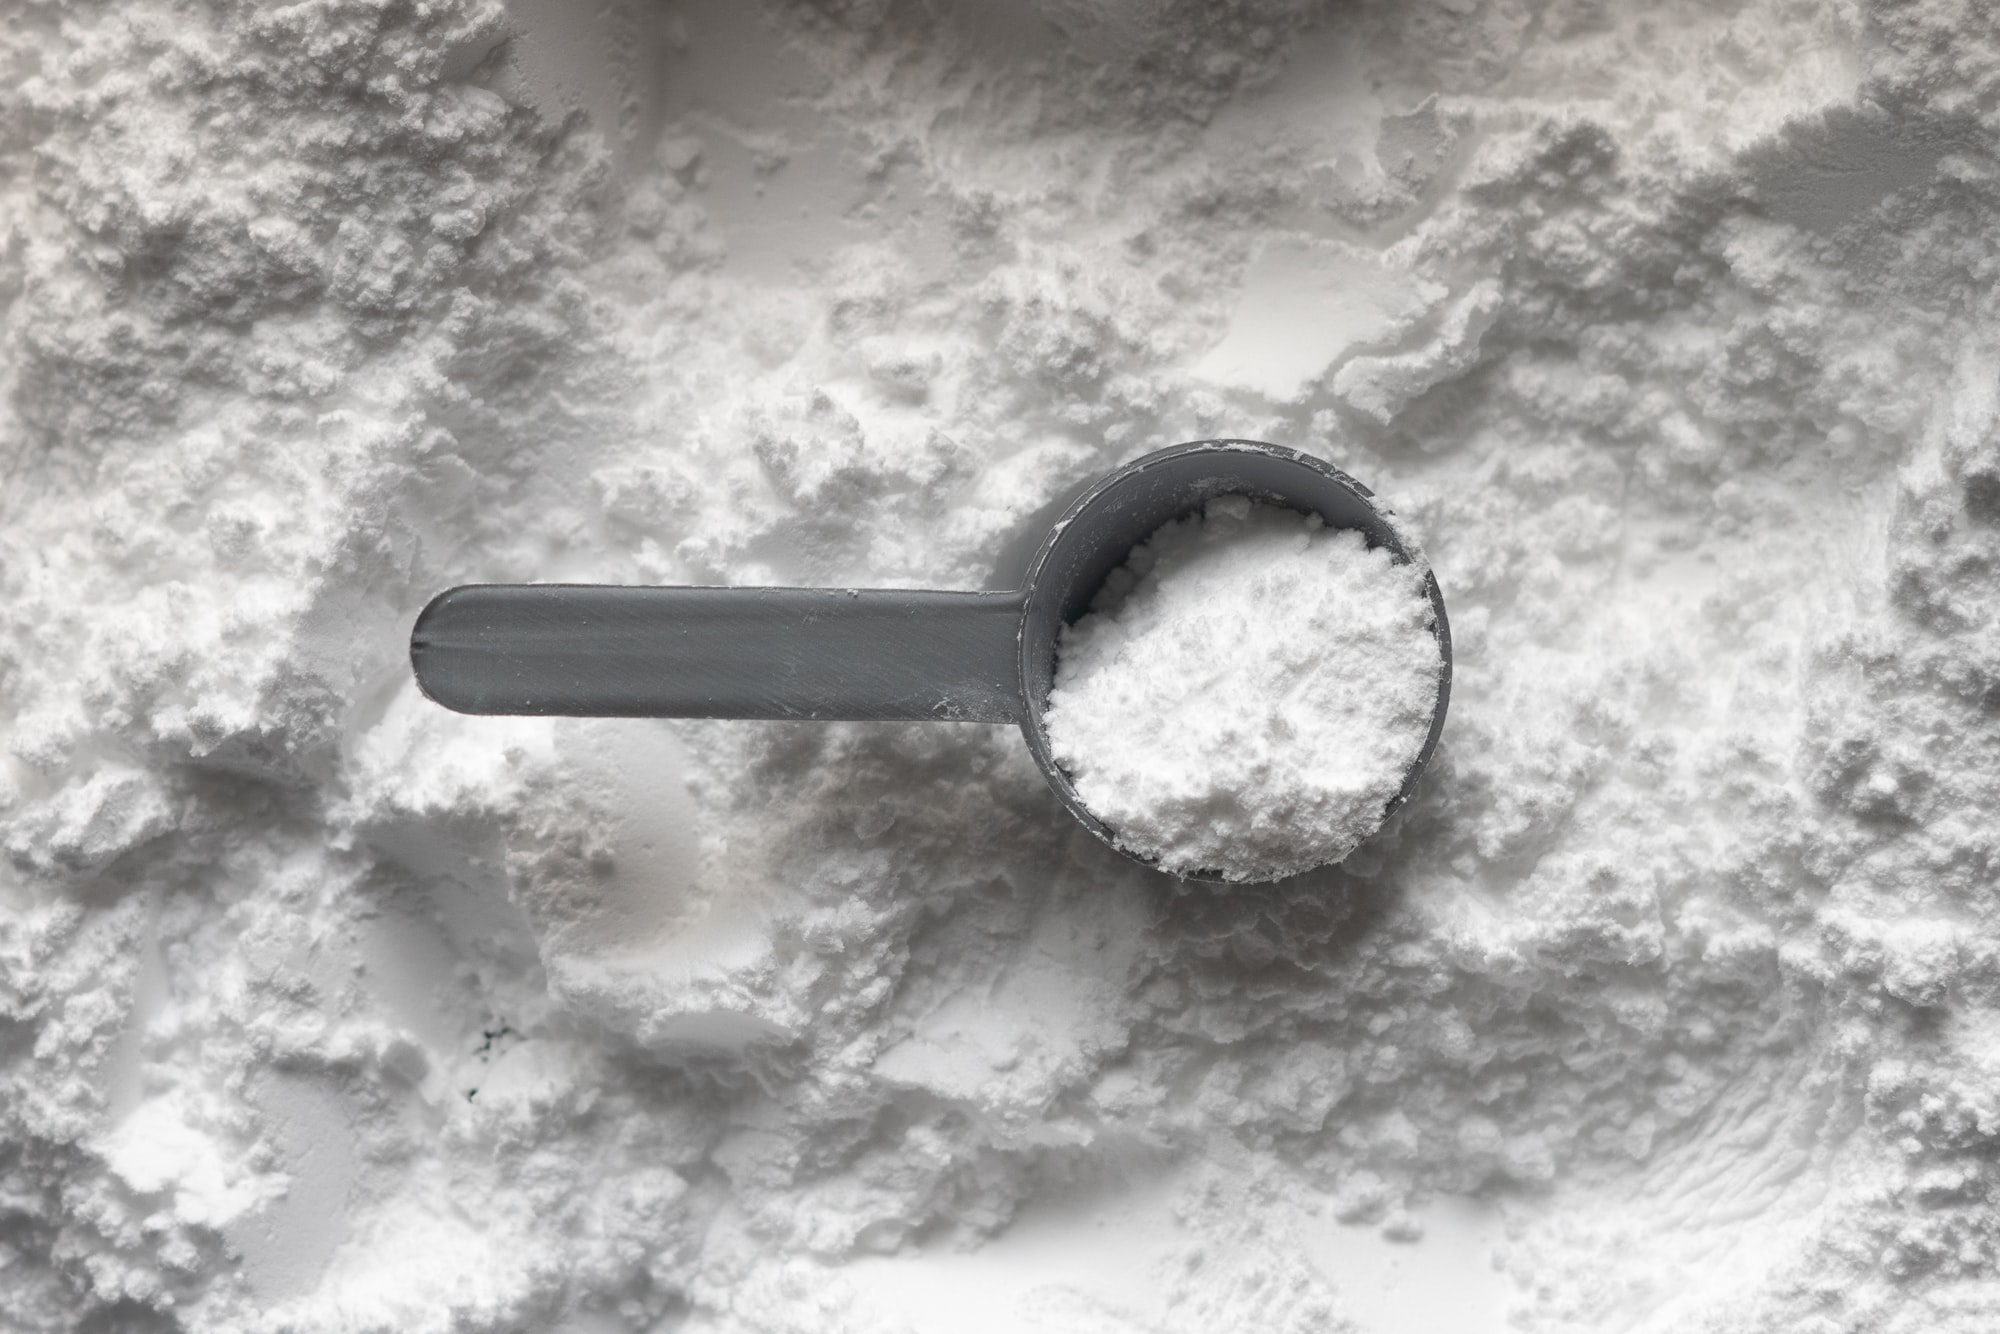 One scoop of white creatine monohydrate powder. A sports supplement that is well studied and researched within the health and fitness industry, it helps to increase strength, muscle mass and endurance.